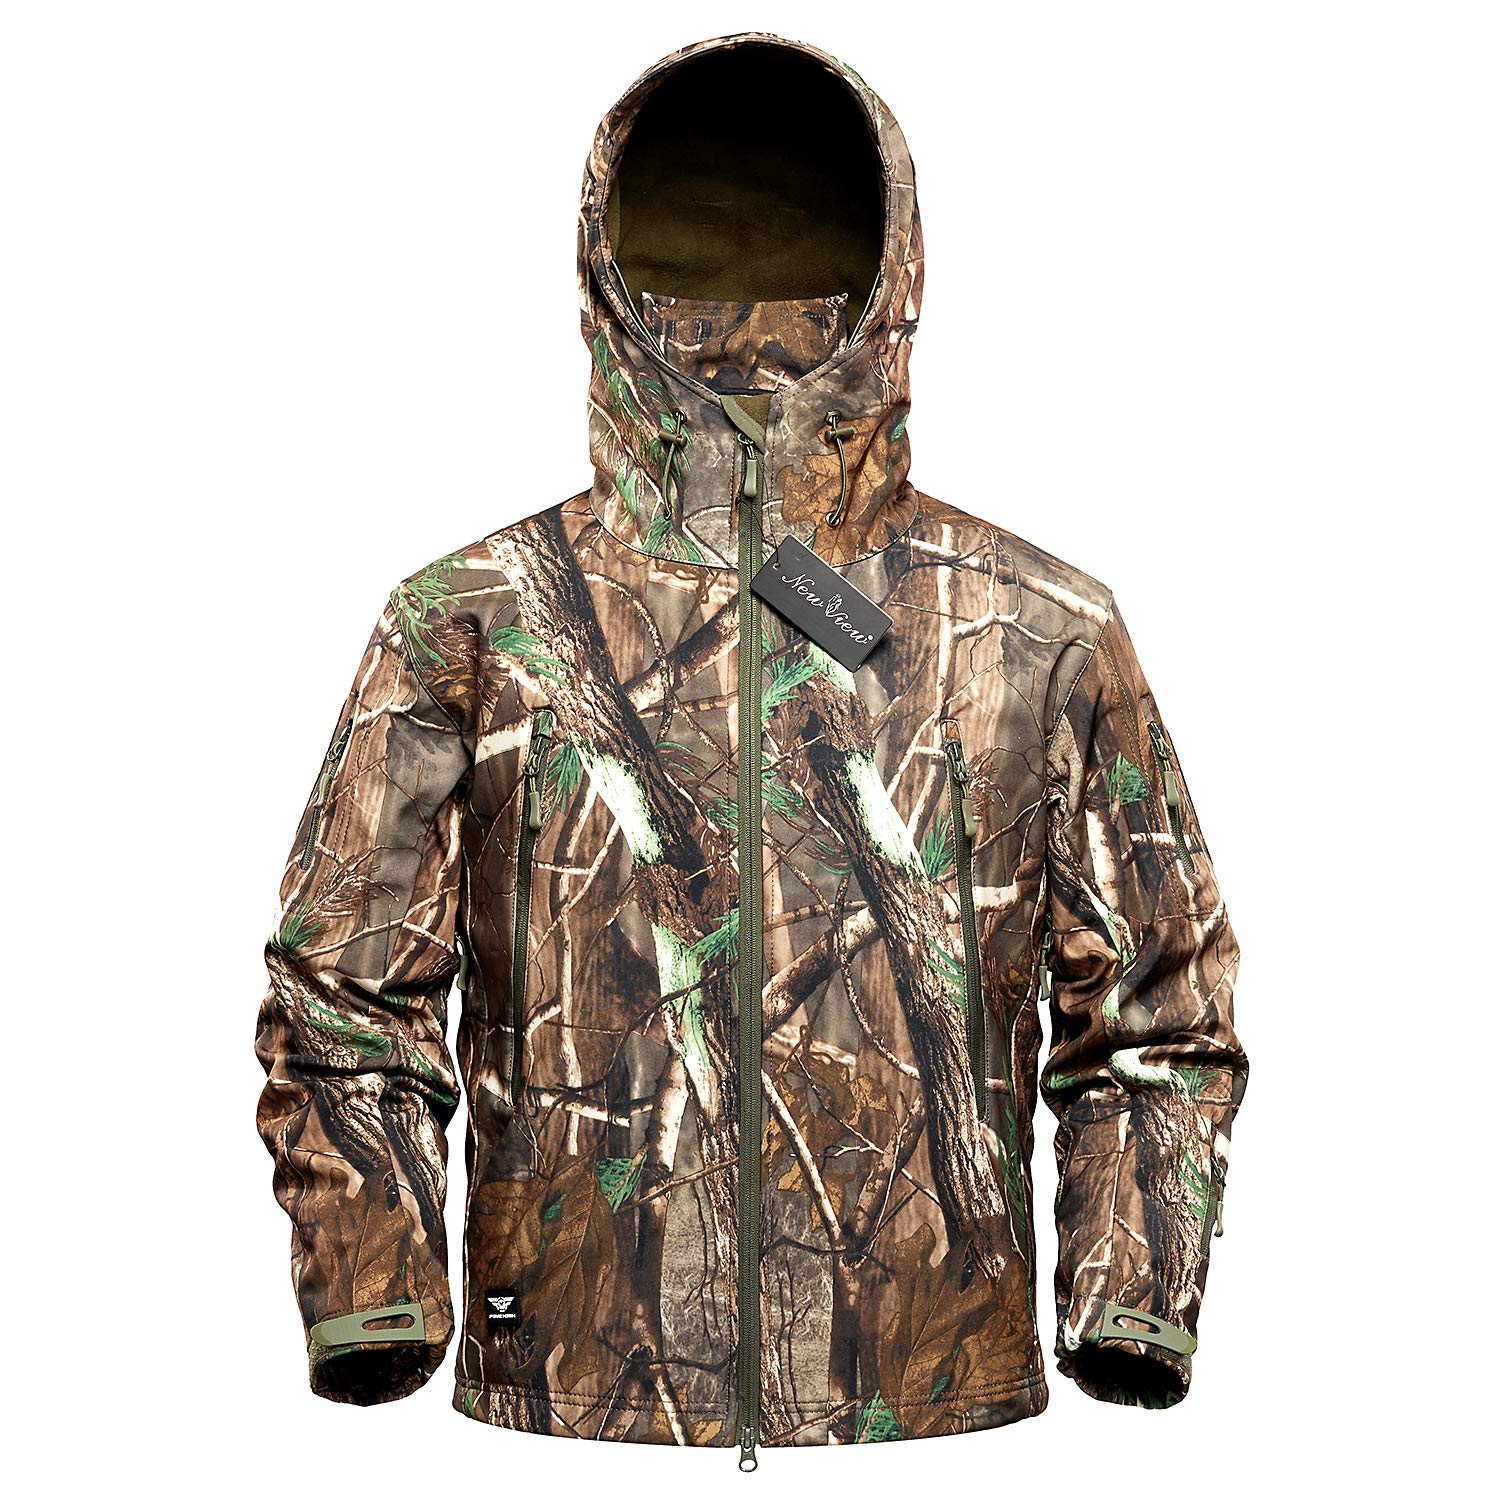 NEW VIEW Hunting Jackets Waterproof Hunting Camouflage Hoodie for Men by NEW VIEW